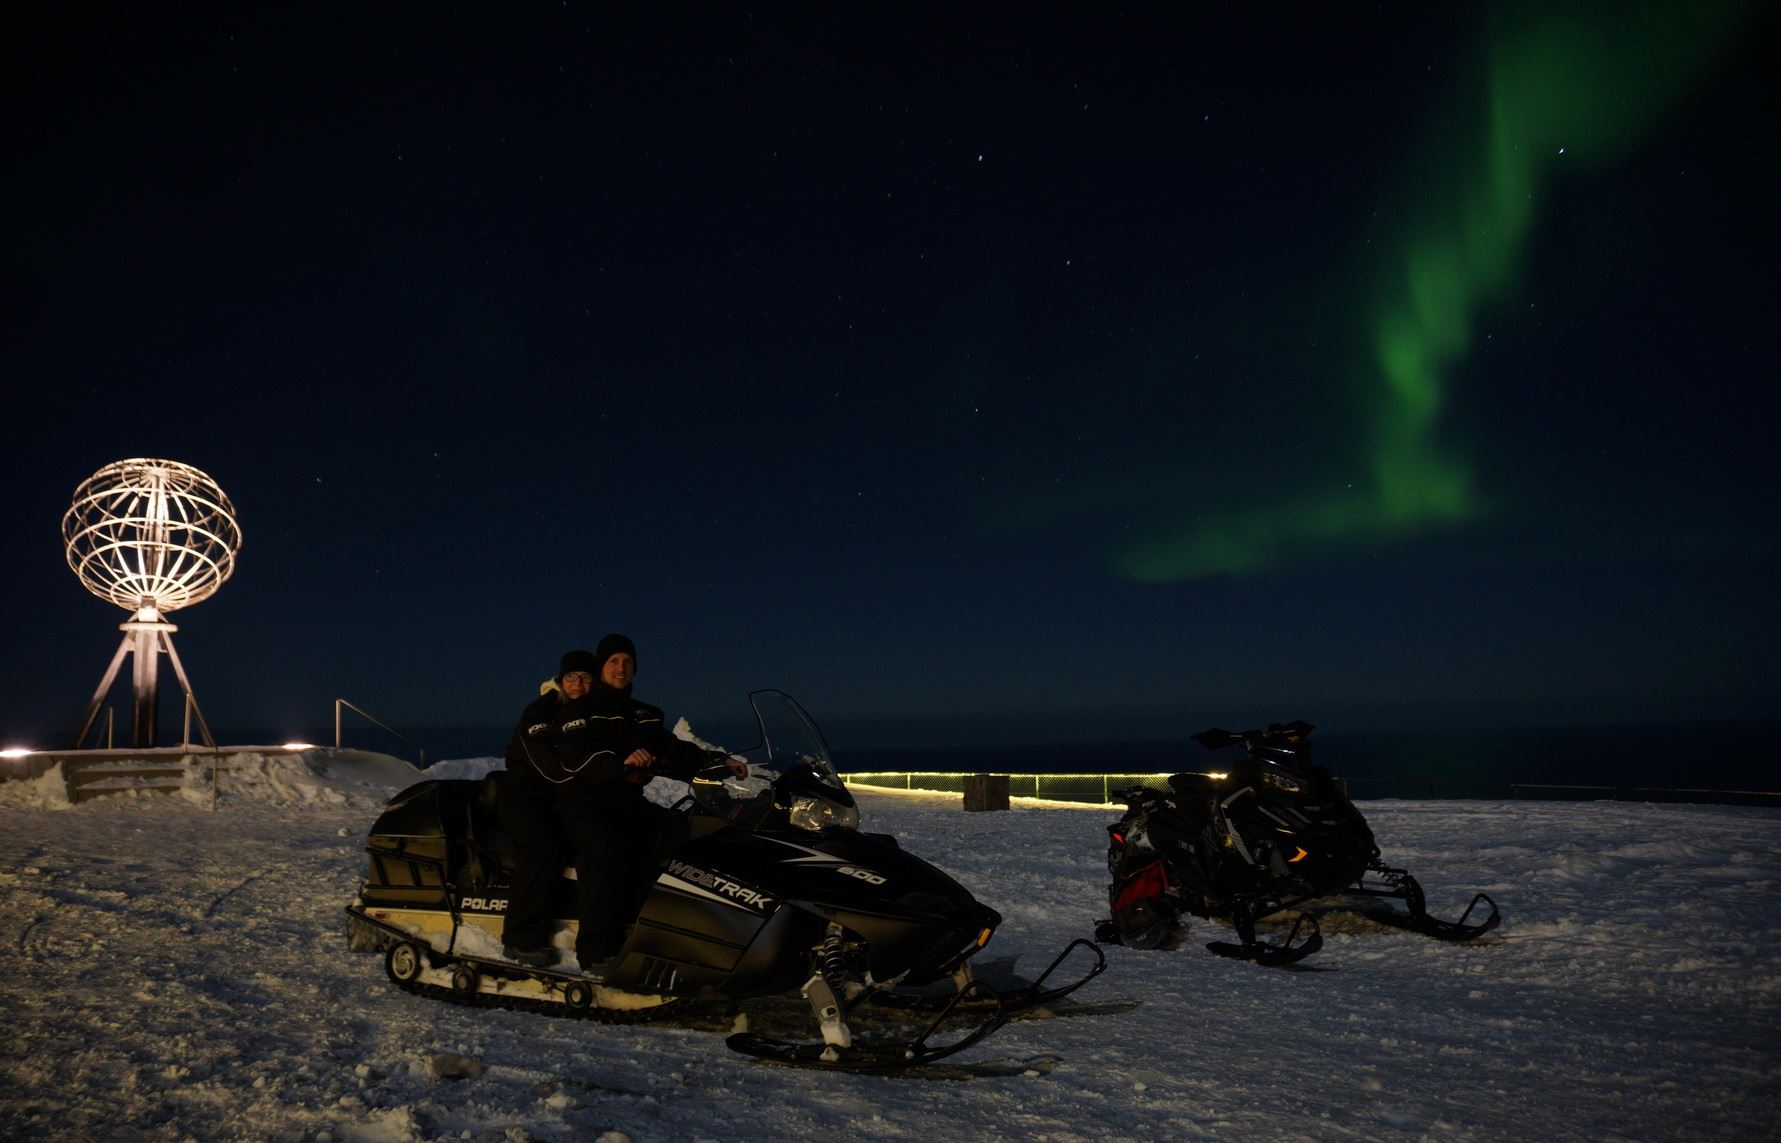 Midnight Expedition to the North Cape